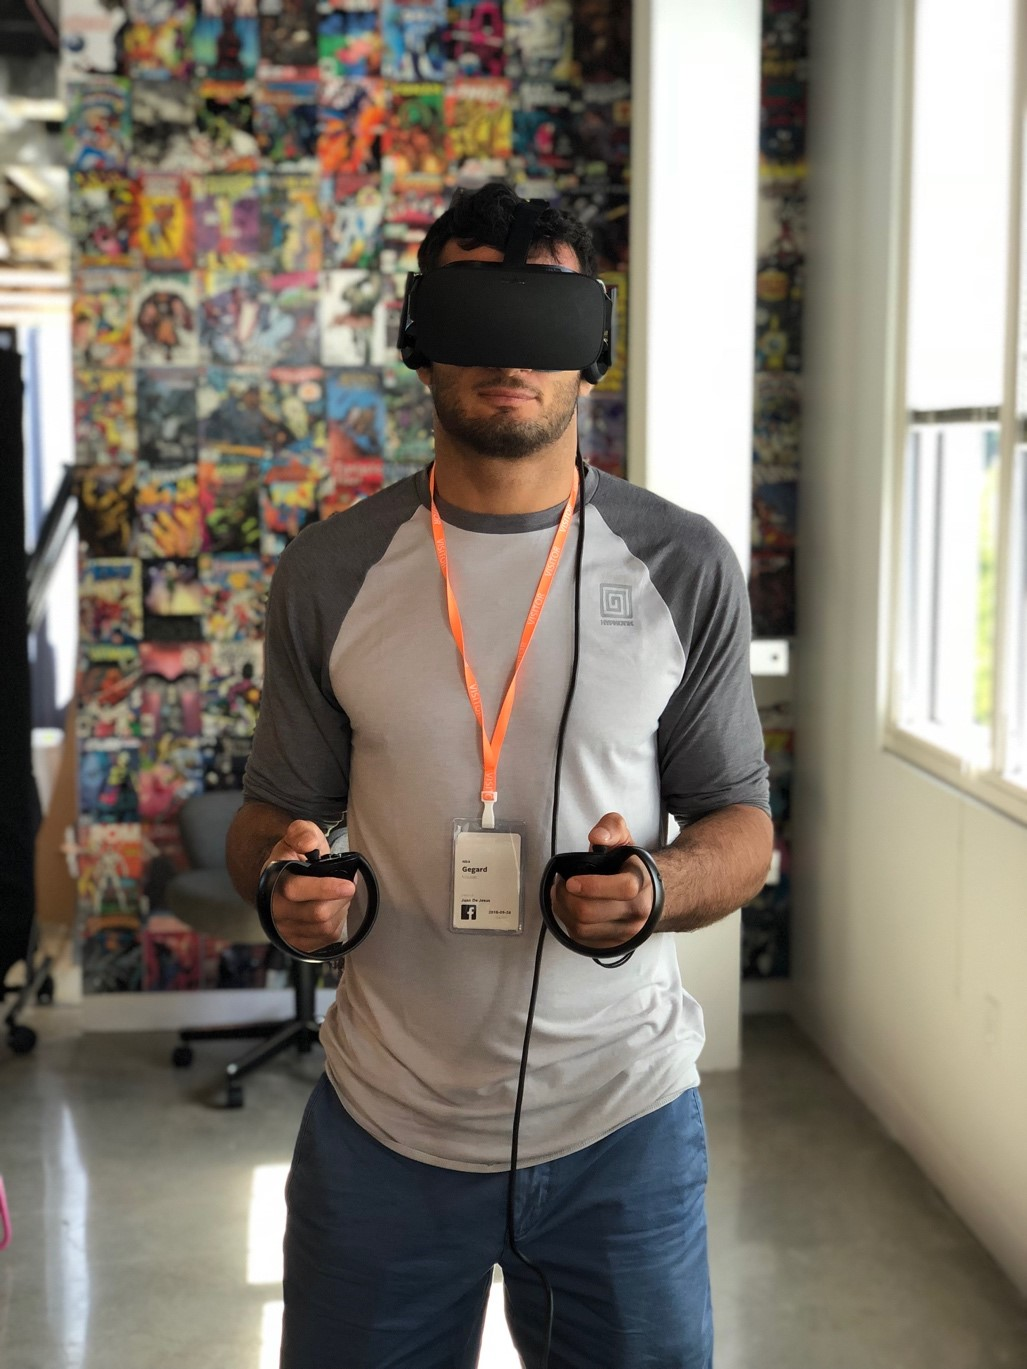 Gegard Mousasi gets his virtual fight training on with the brand new Oculus Rift 5.